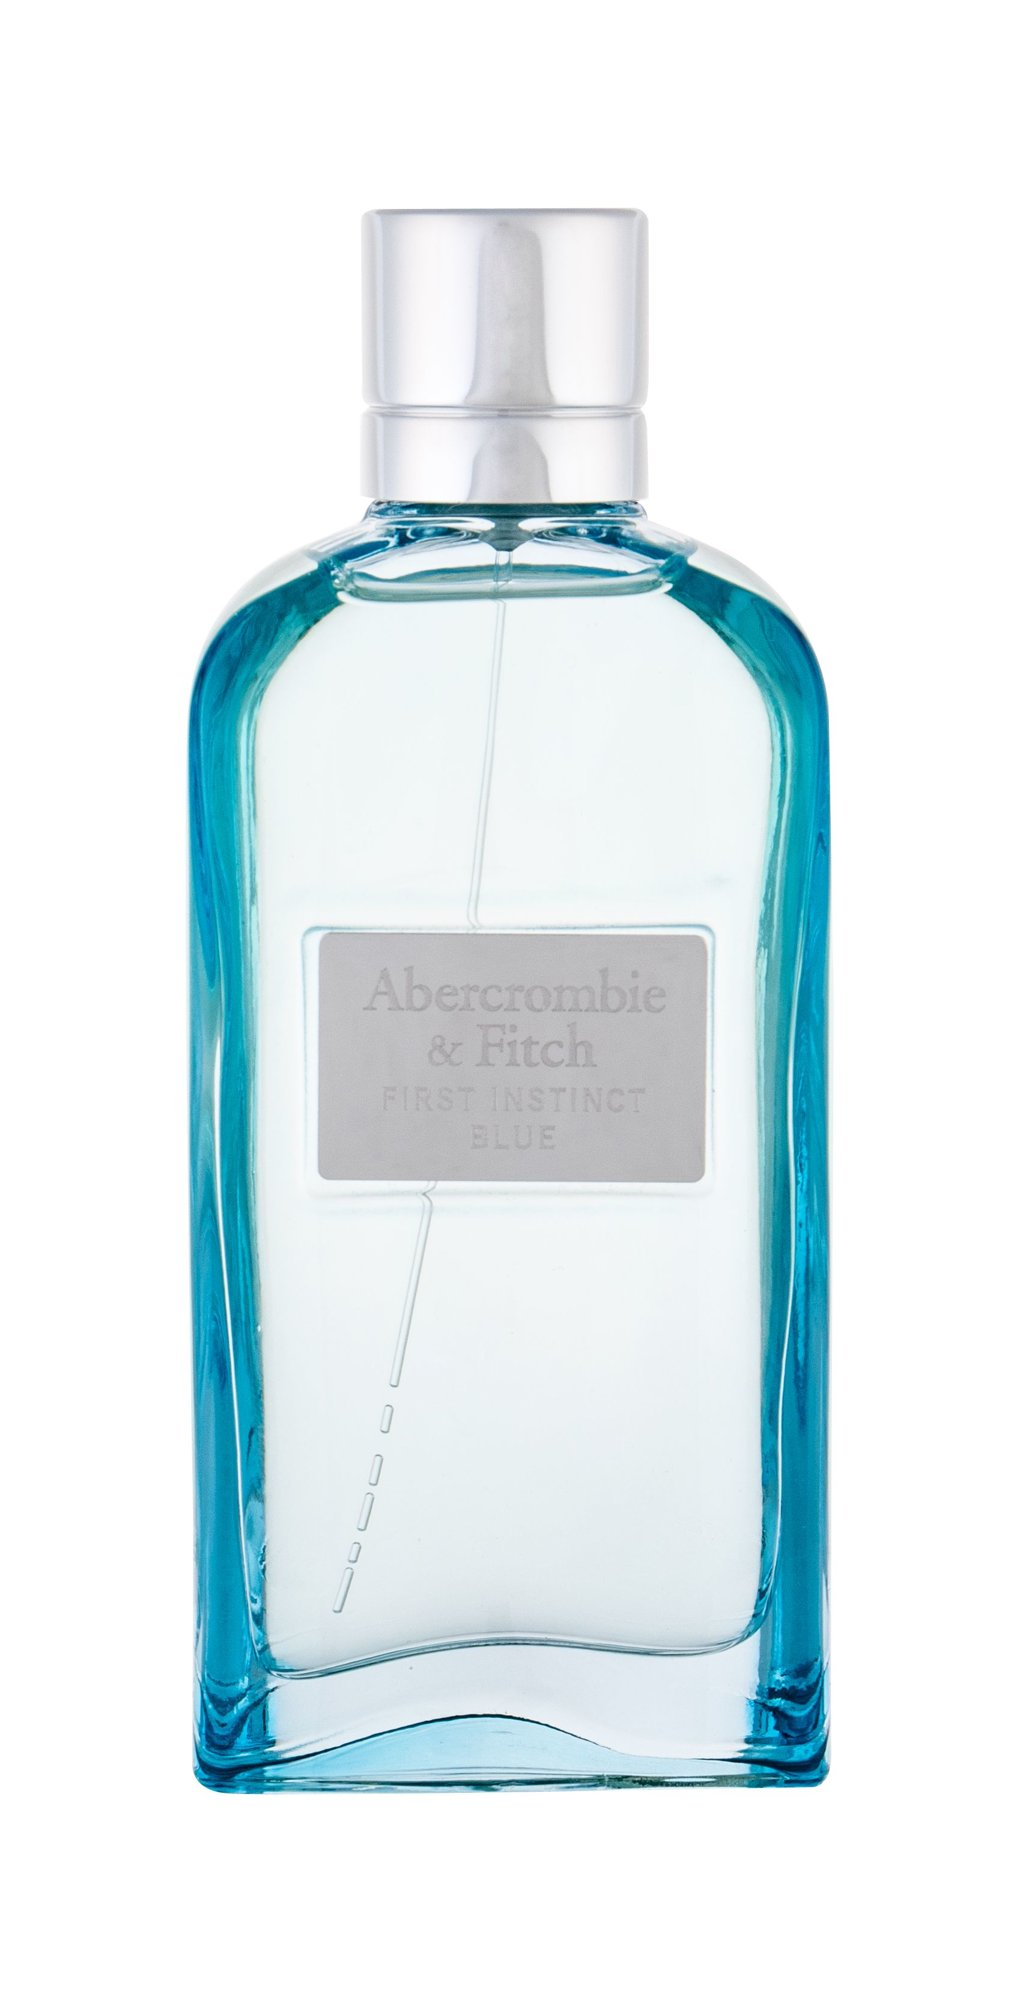 Abercrombie & Fitch First Instinct  Parfémovaná voda, W, 100 ml